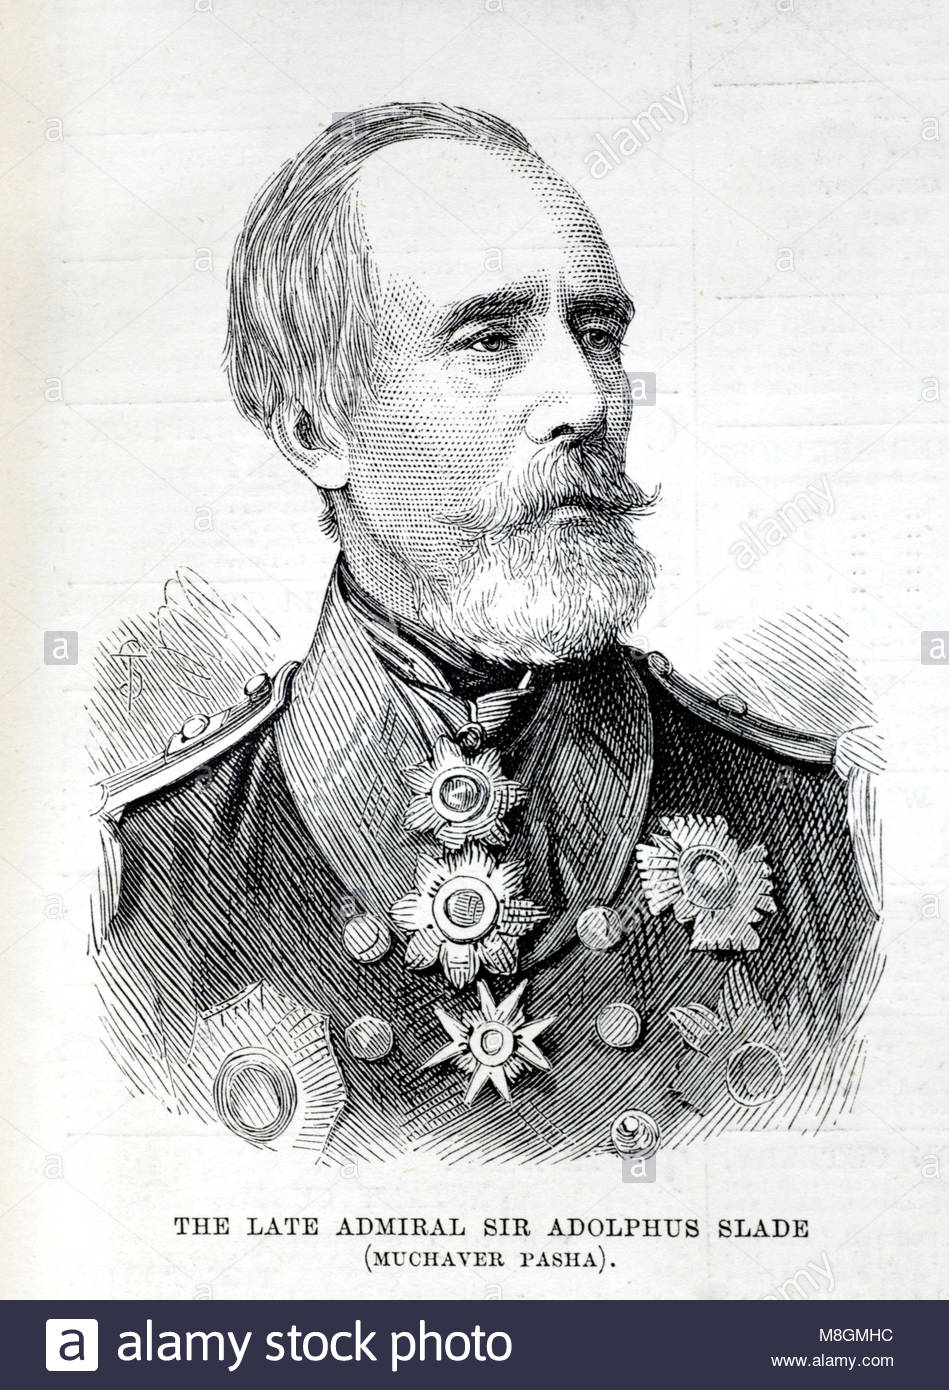 Sir Adolphus Slade 1804 – 1877, was a British Admiral, antique engraving from 1877 - Stock Image